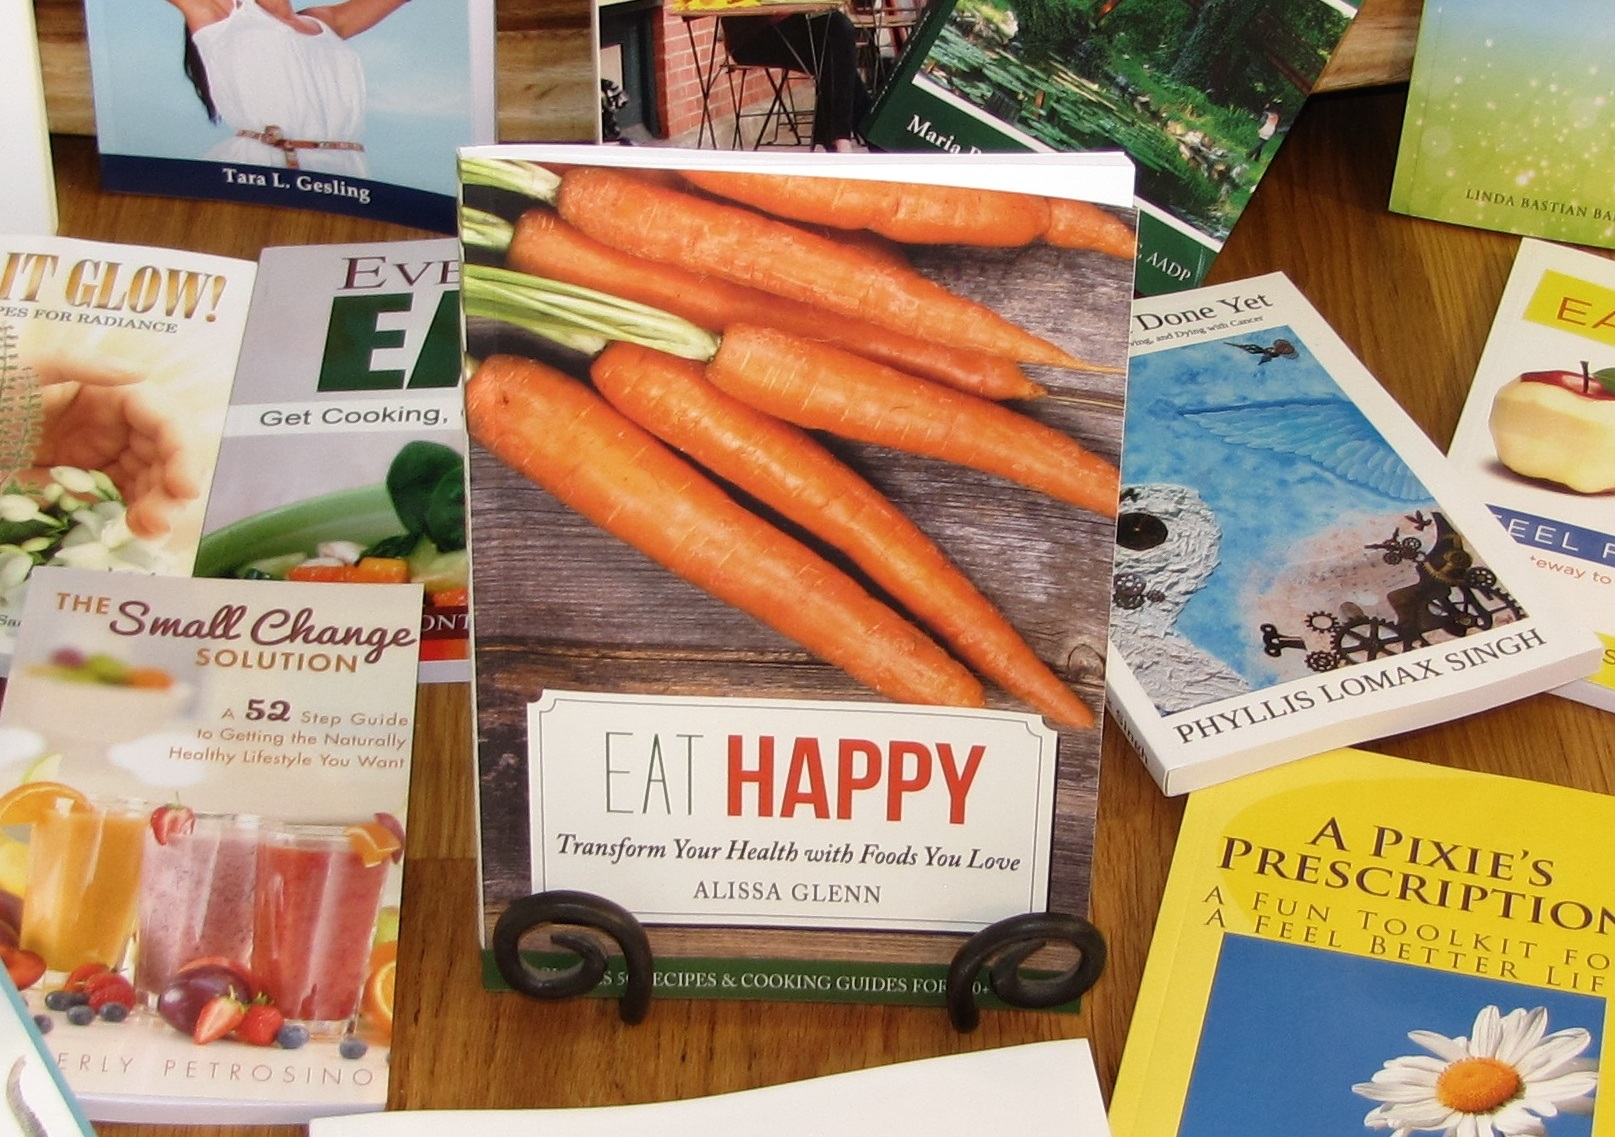 Eat Happy: Transform Your Health with Foods You Love is available